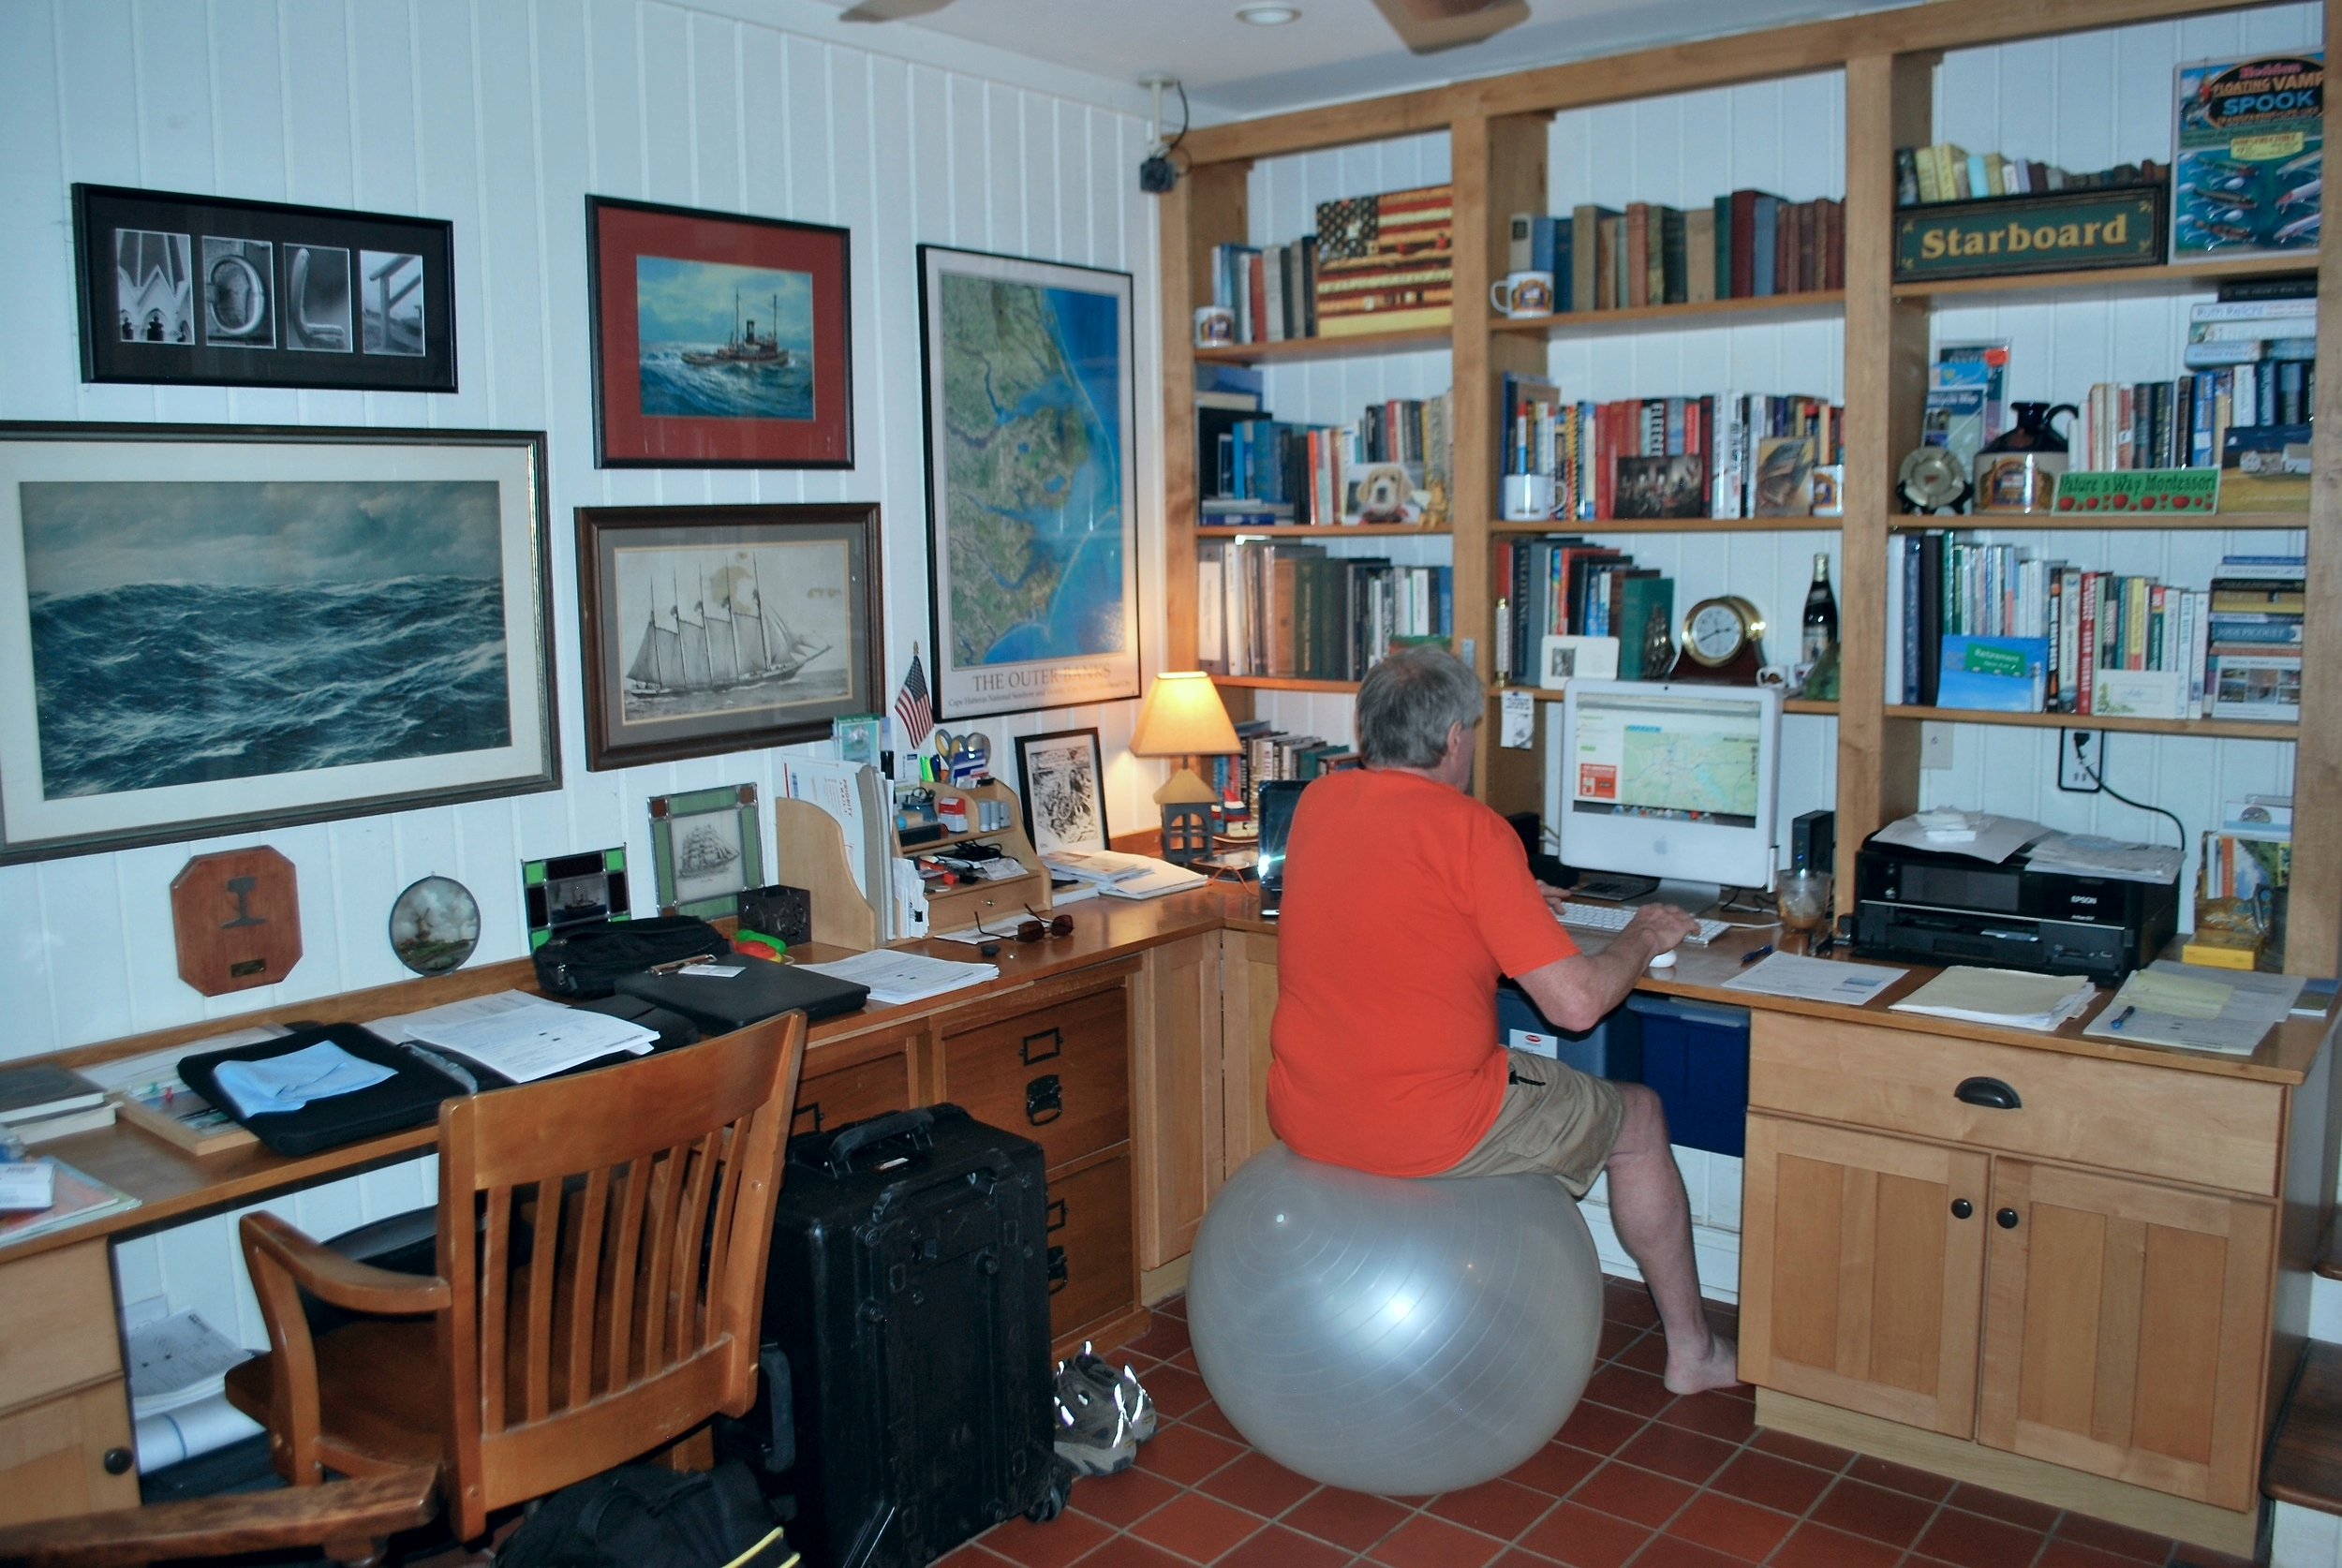 Peter at work in his home office